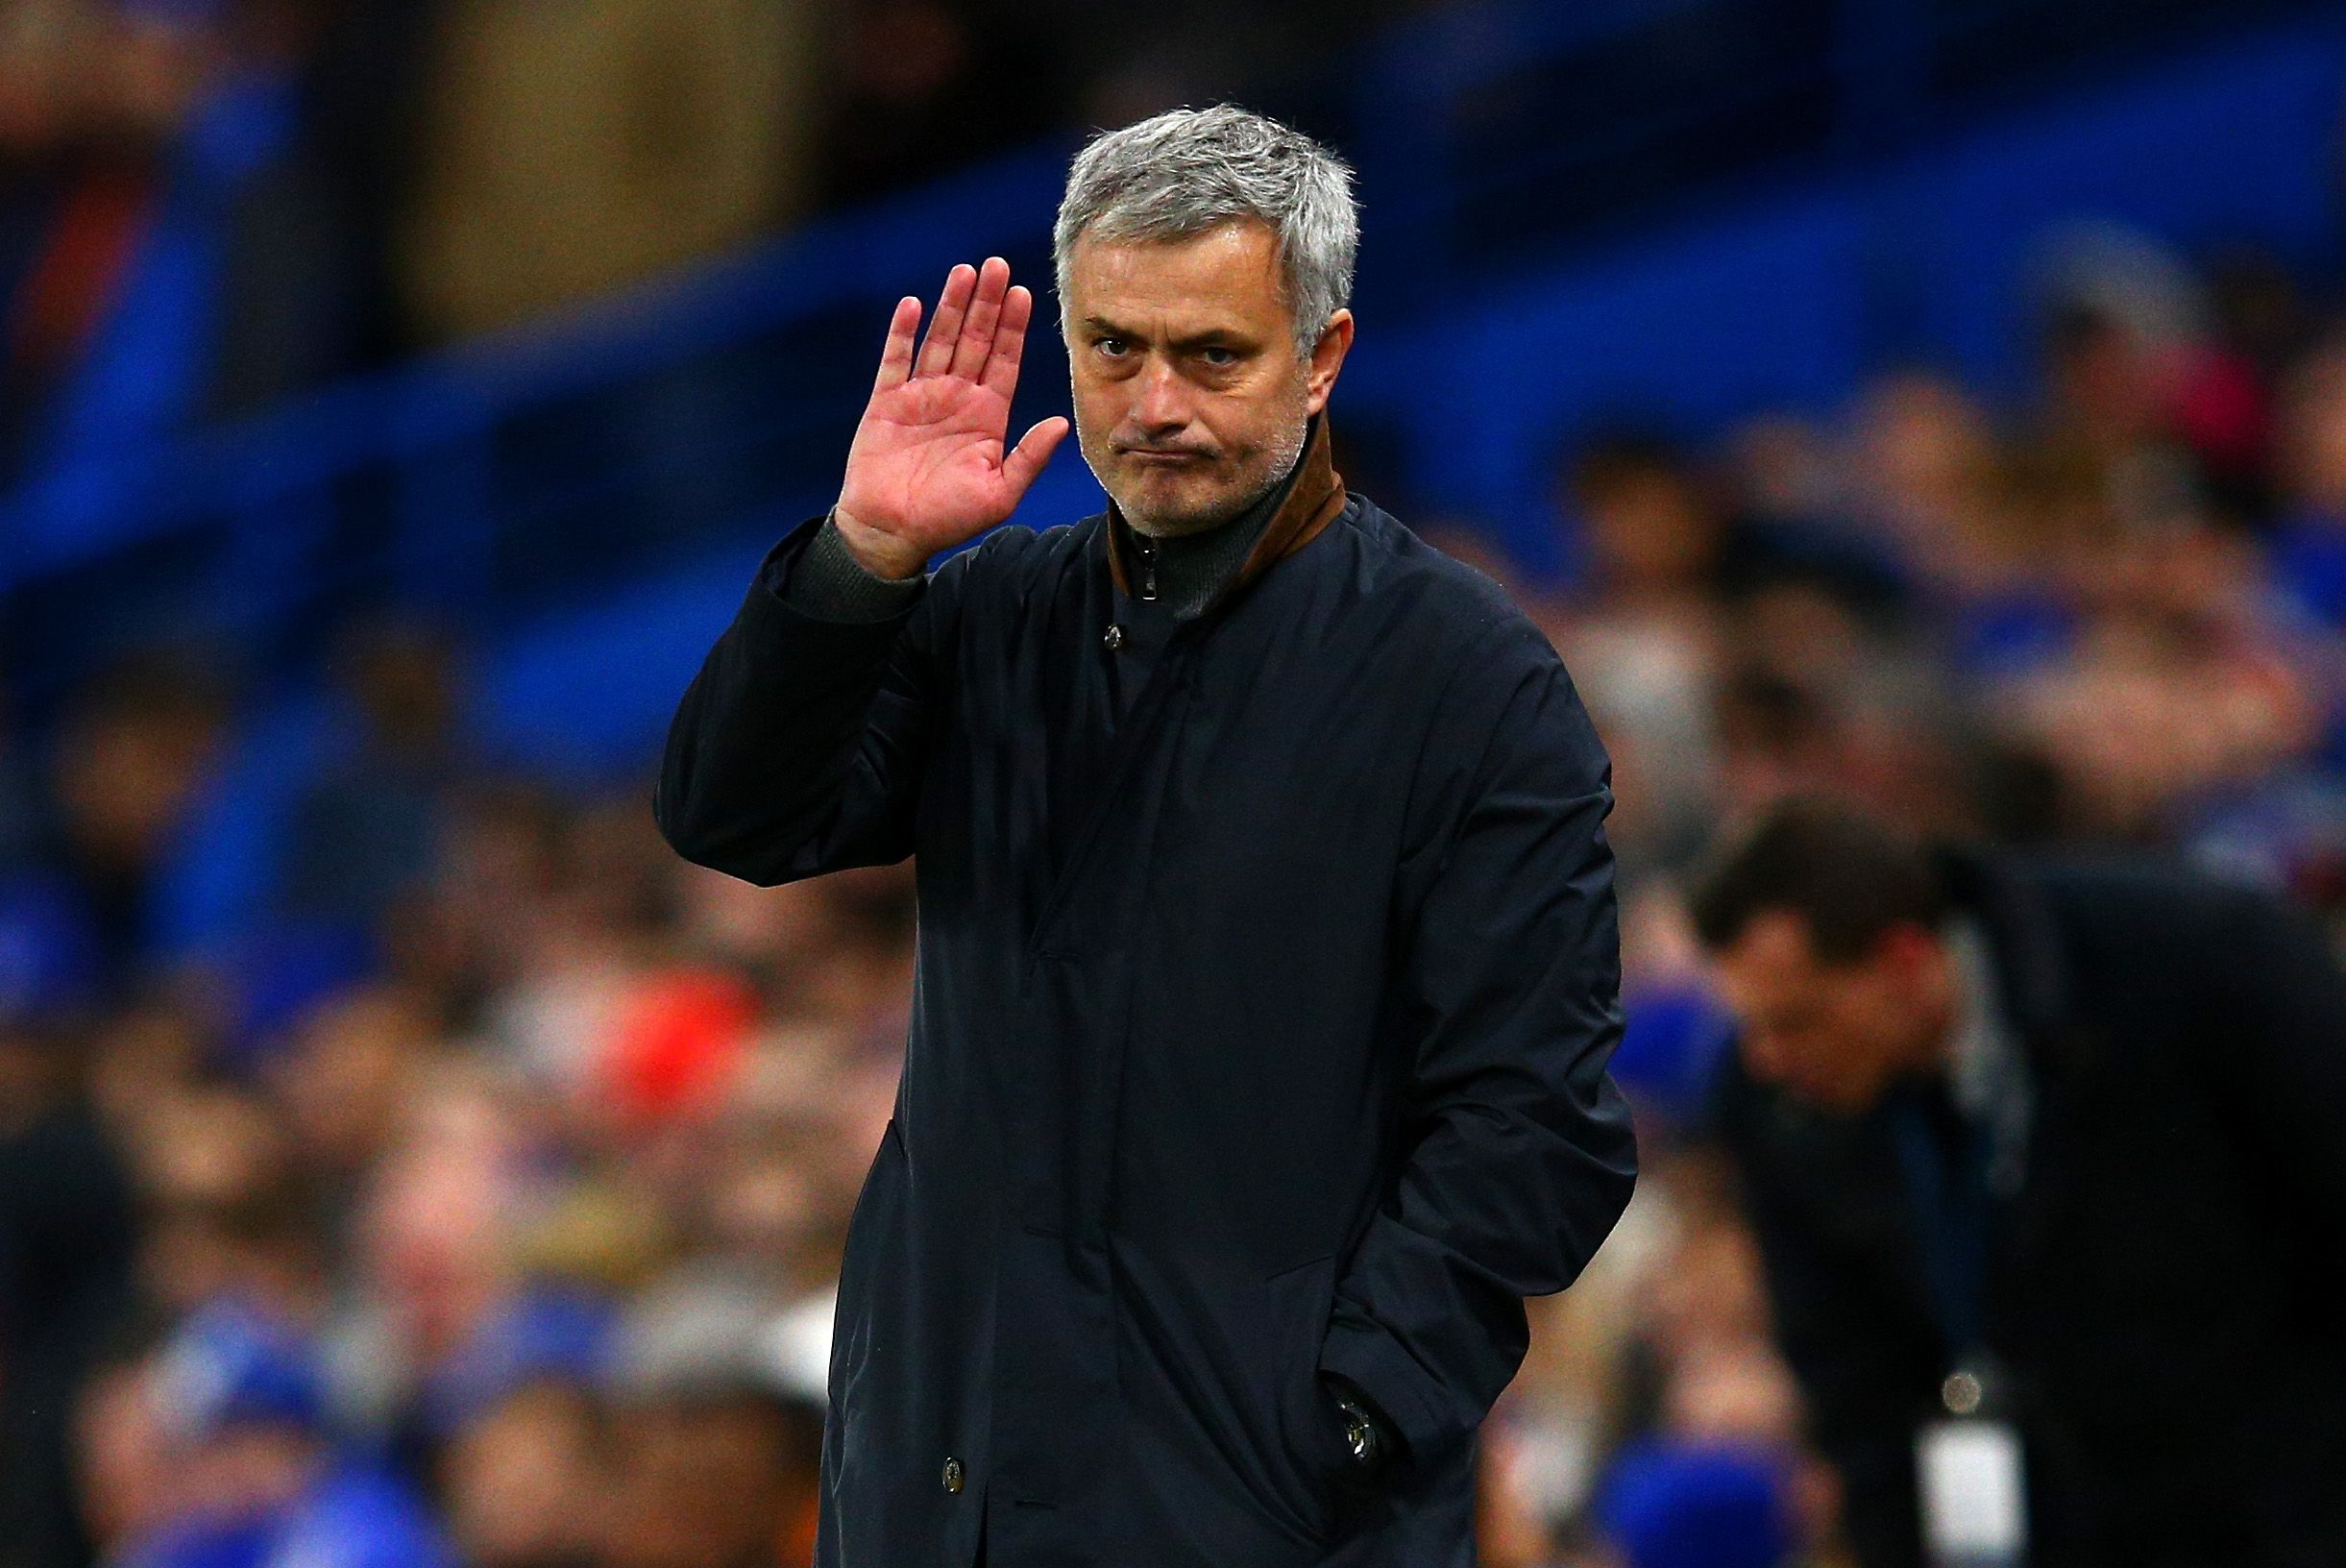 Jose Mourinho has had interest from Manchester United and Paris Saint-Germain.